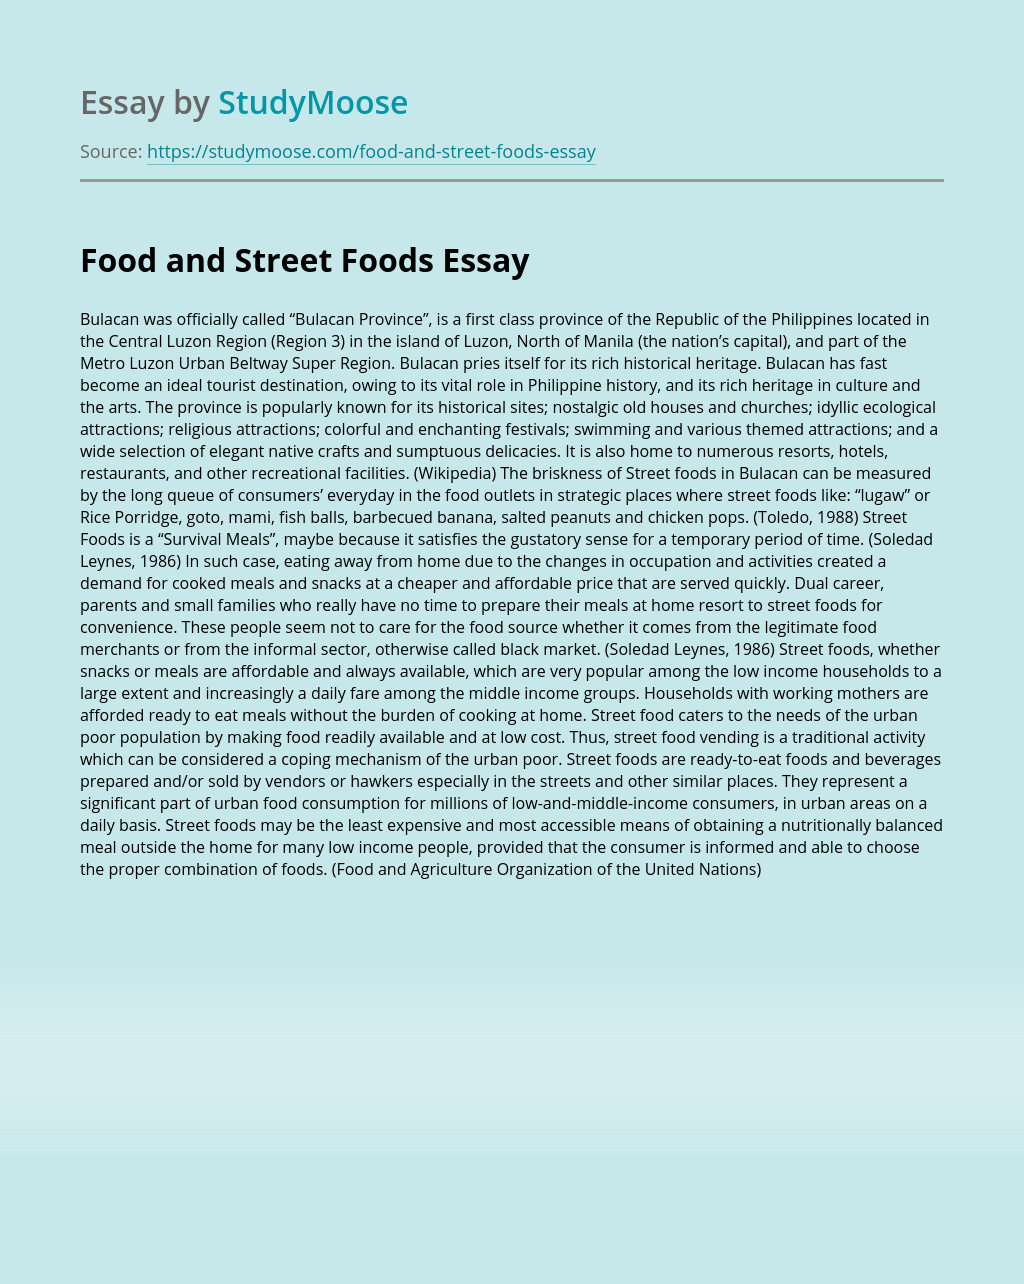 Food and Street Foods